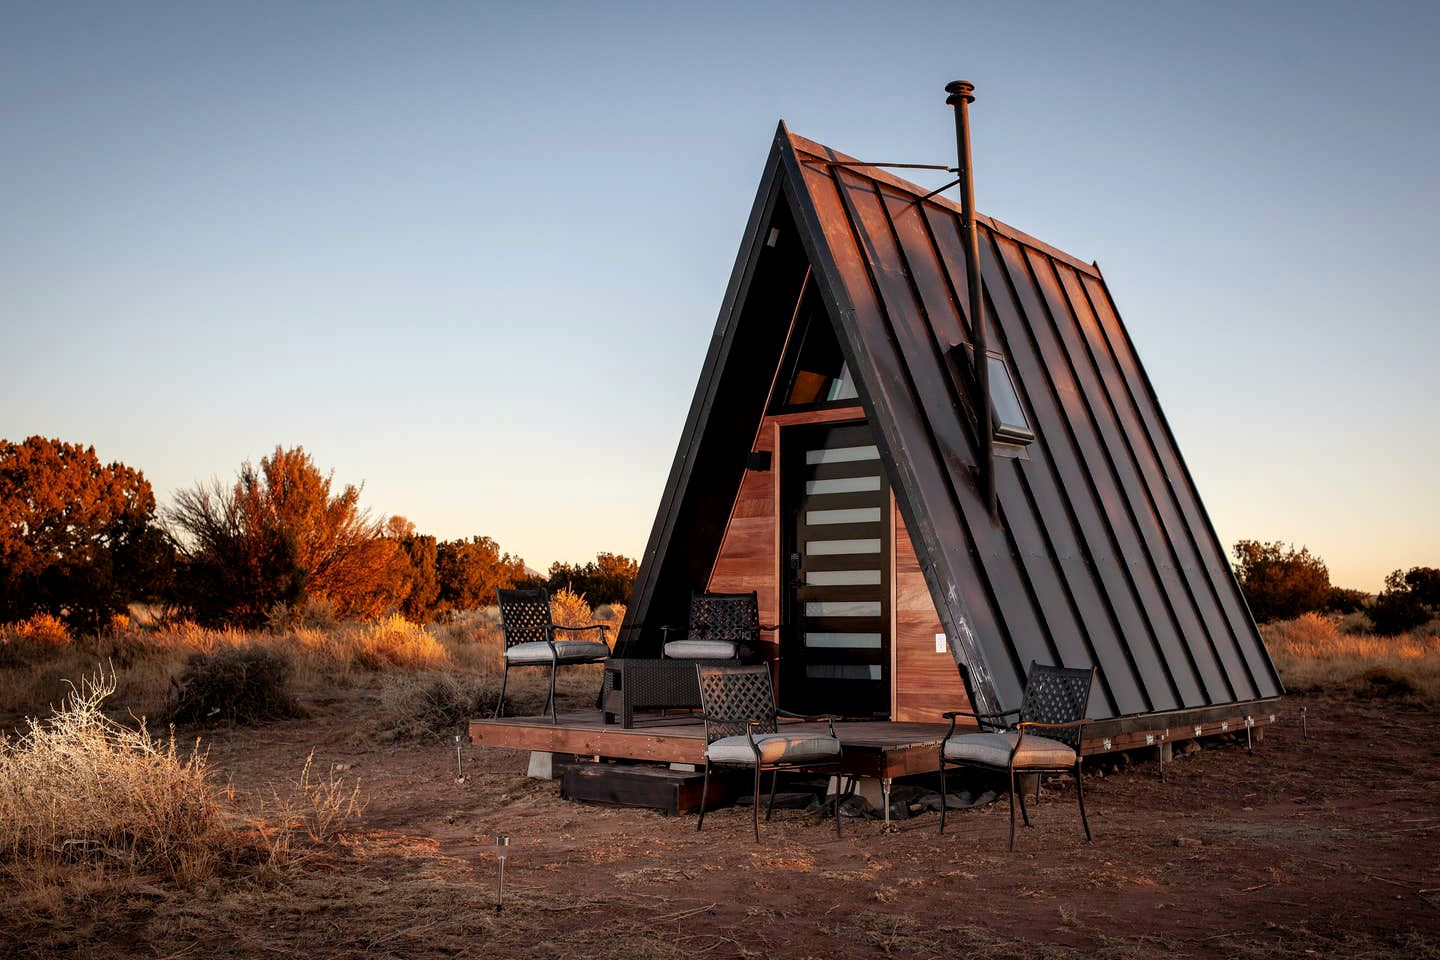 Go glamping near the Grand Canyon in this A-frame Williams accommodation.